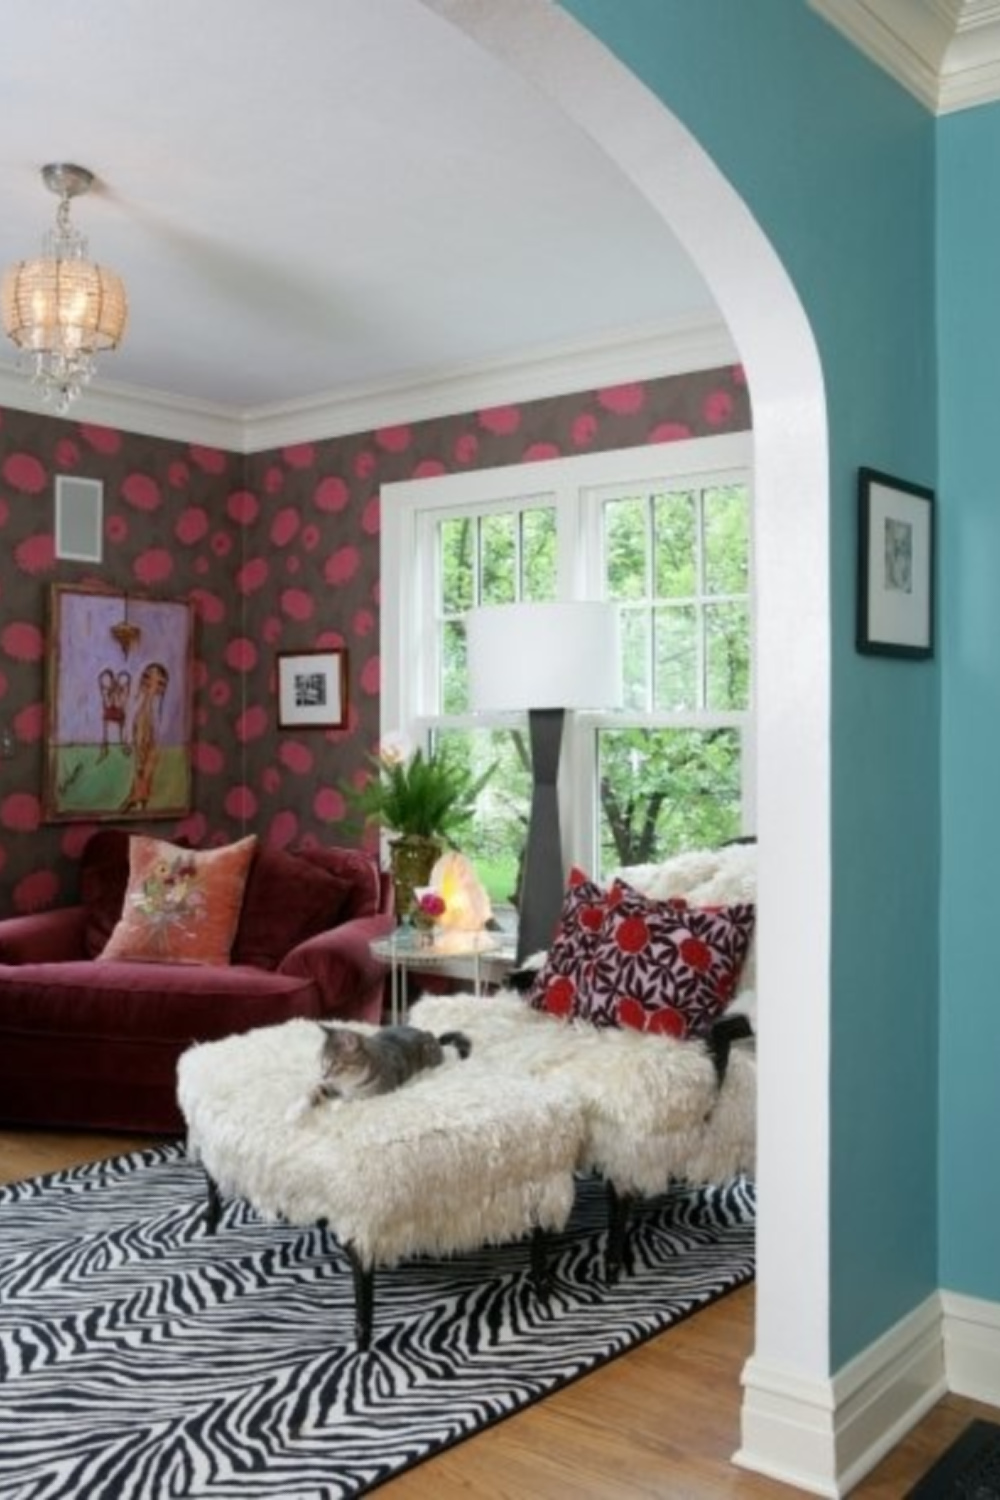 Bold 70's inspired whimsical wallpaper in an eclectic music room by Jenny Sweeney with flea market style.